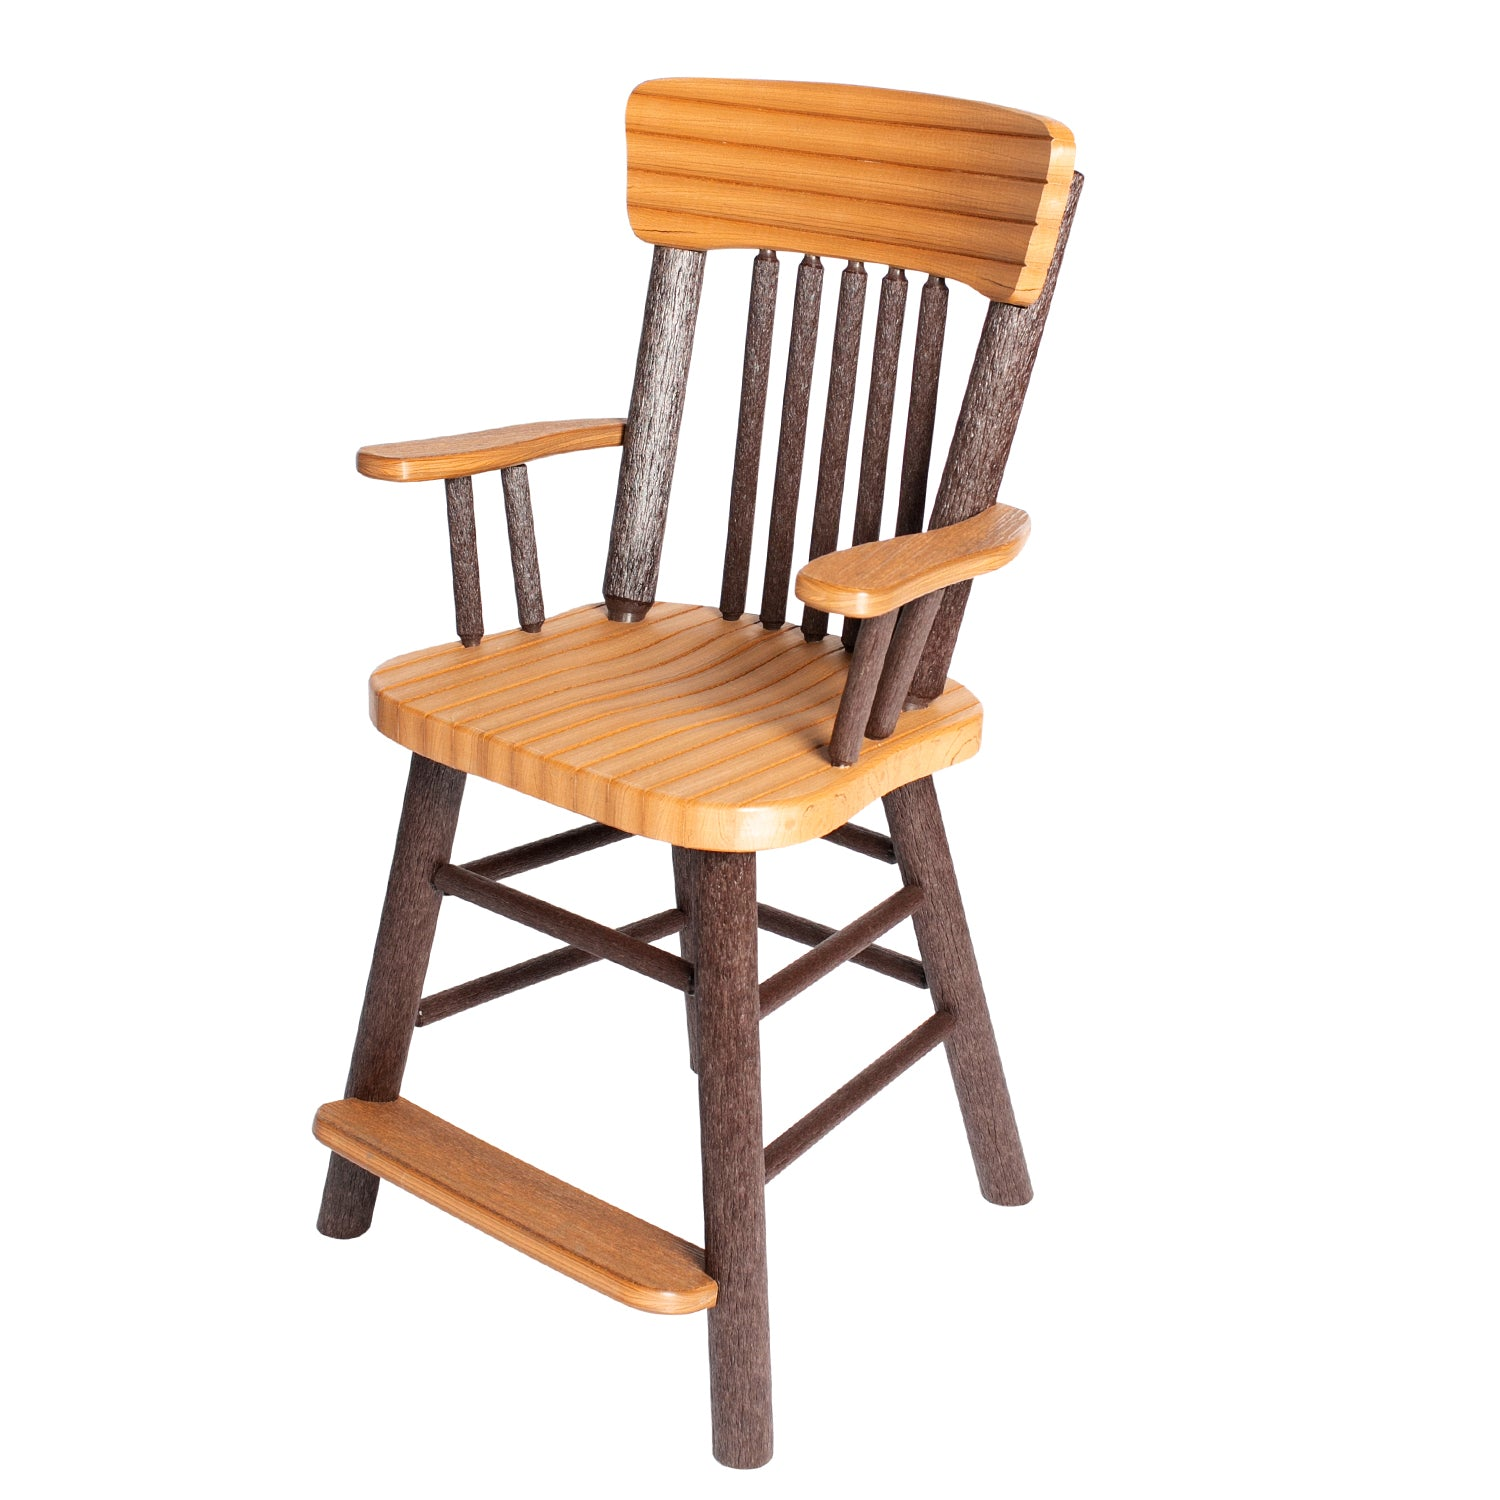 Great Woods Rustic PolyLog Balcony Height Captain's Chair